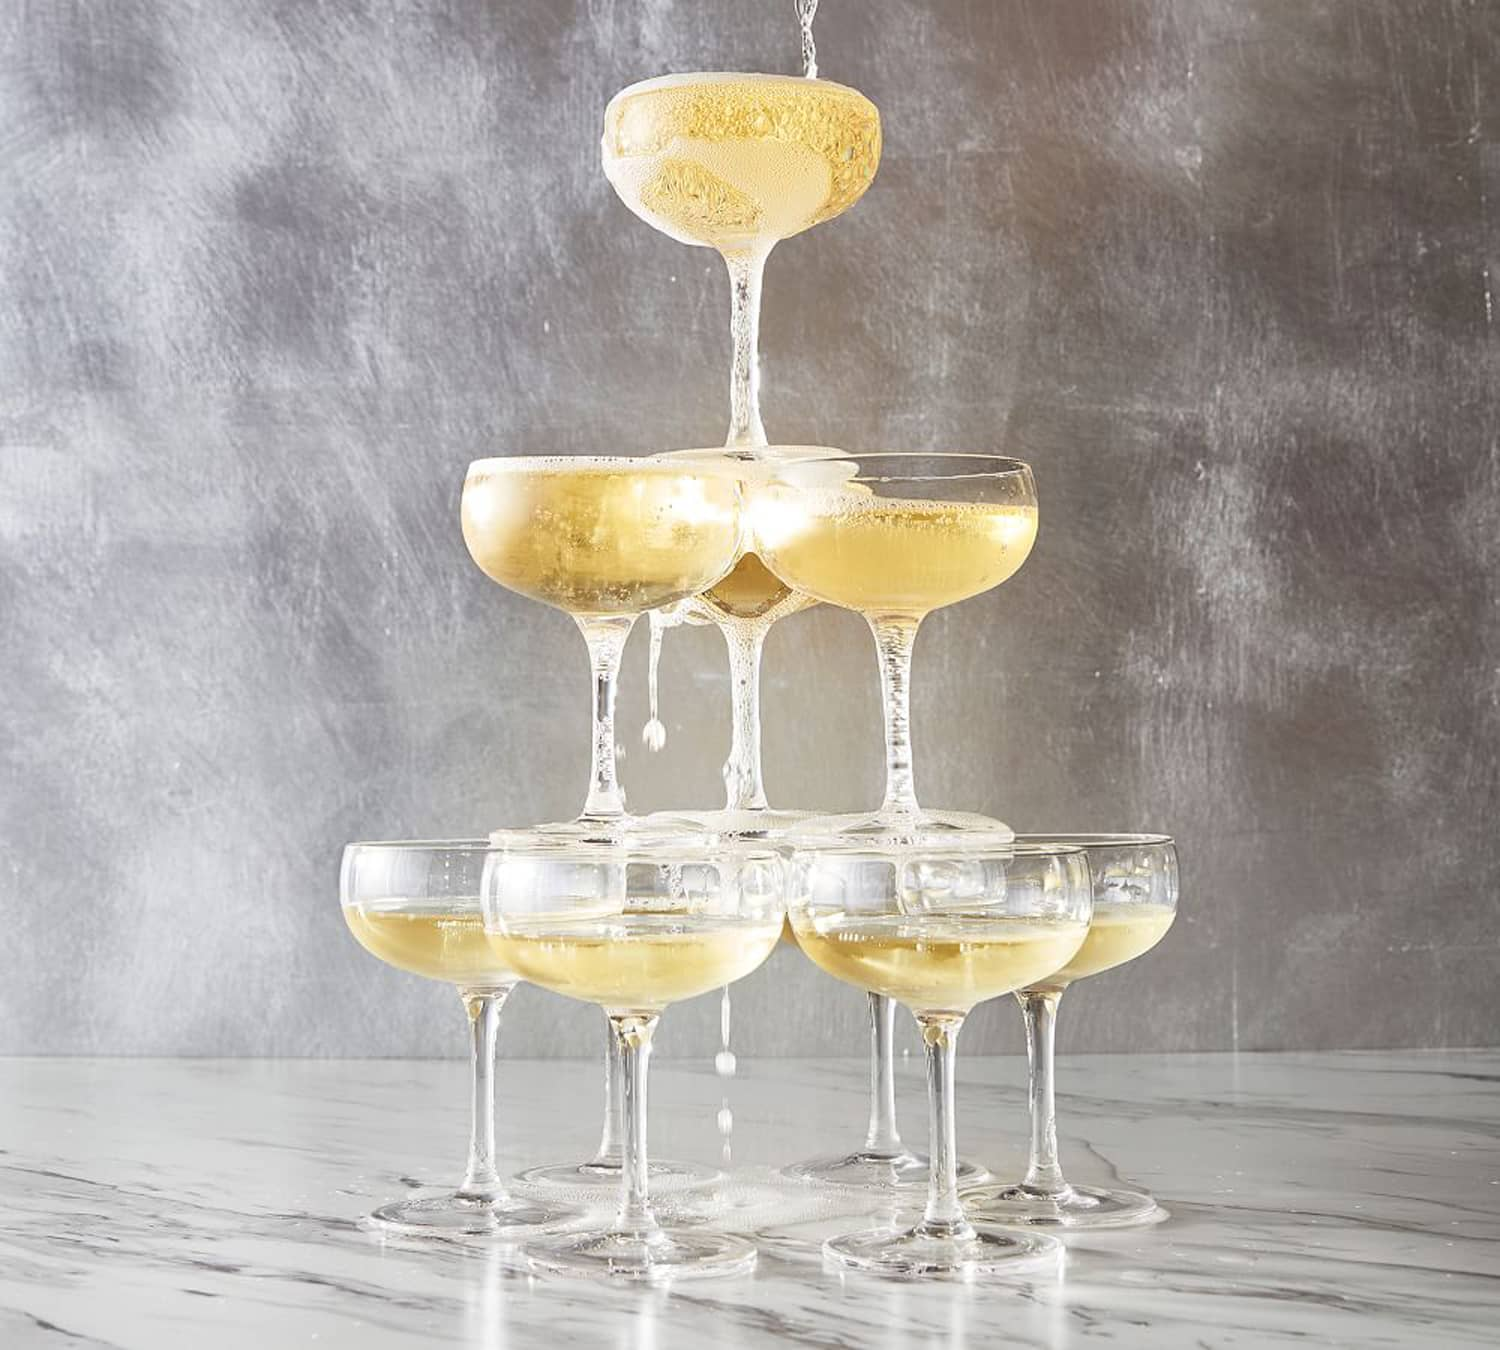 Champagne Tower Coupe Glasses